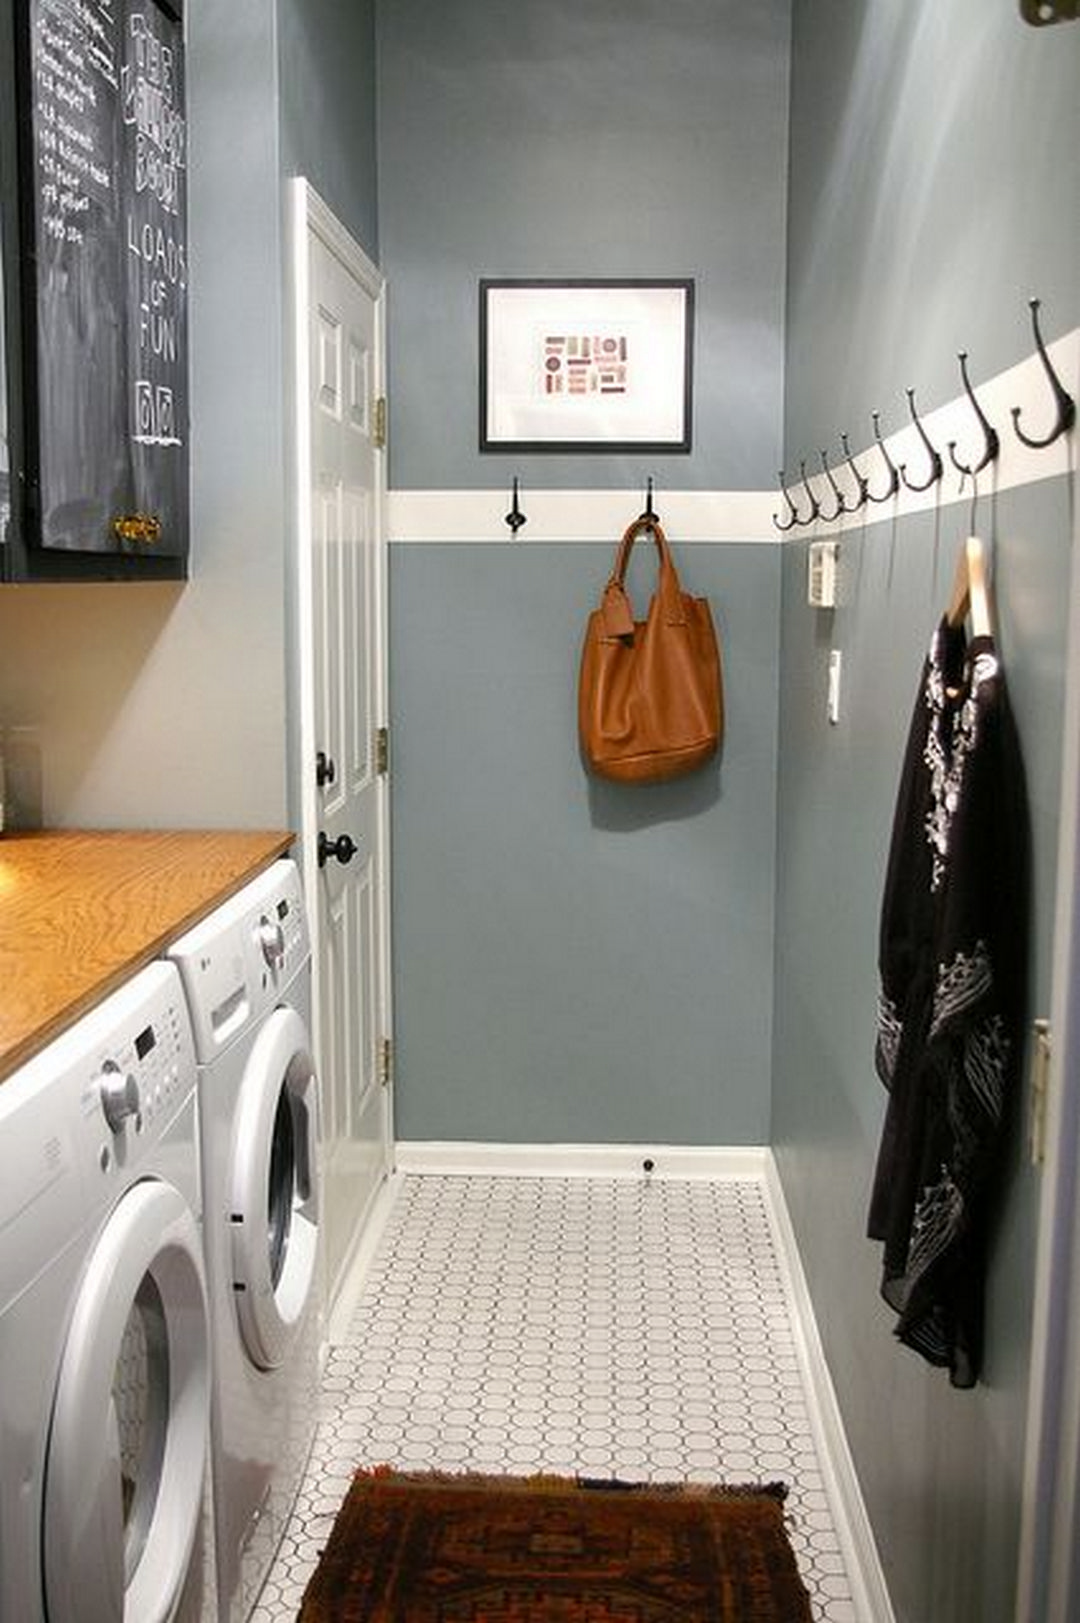 57 Nice Laundry Room Interior Ideas | Room interior, Laundry rooms Laundry Room Ideas Home Design Html on cute ideas, laundry design ideas, game room home ideas, home dressing room ideas, home bar room ideas, home printing room ideas, home store room ideas, home coffee shop room ideas, home pool room ideas, home tv room ideas, home sauna room ideas, built in room ideas, home lounge room ideas, home storage room ideas, home family room ideas, home library room ideas, home gym room ideas, home recreation room ideas, home laundry accessories,